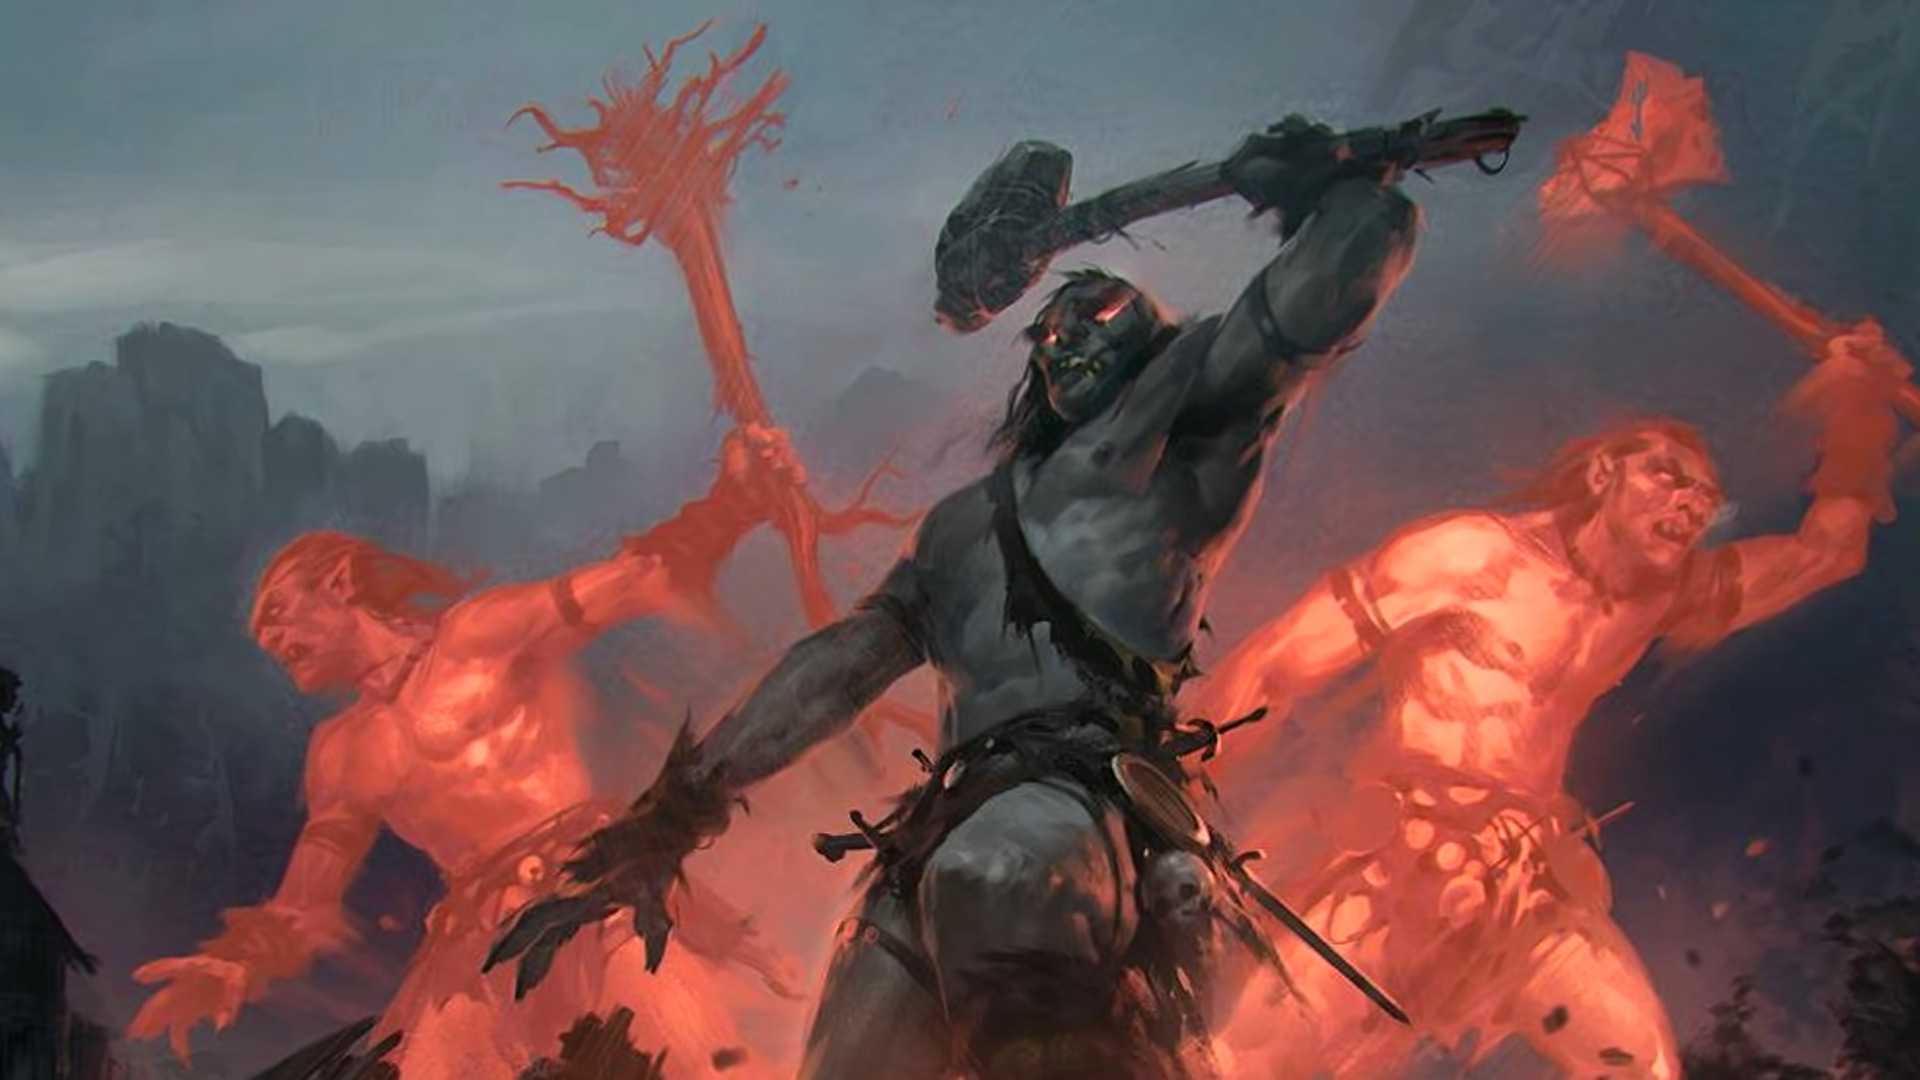 Dungeons And Dragons Feats 2020 (Pt. 2): Wizards Of The Coast Adds 15 New Feats